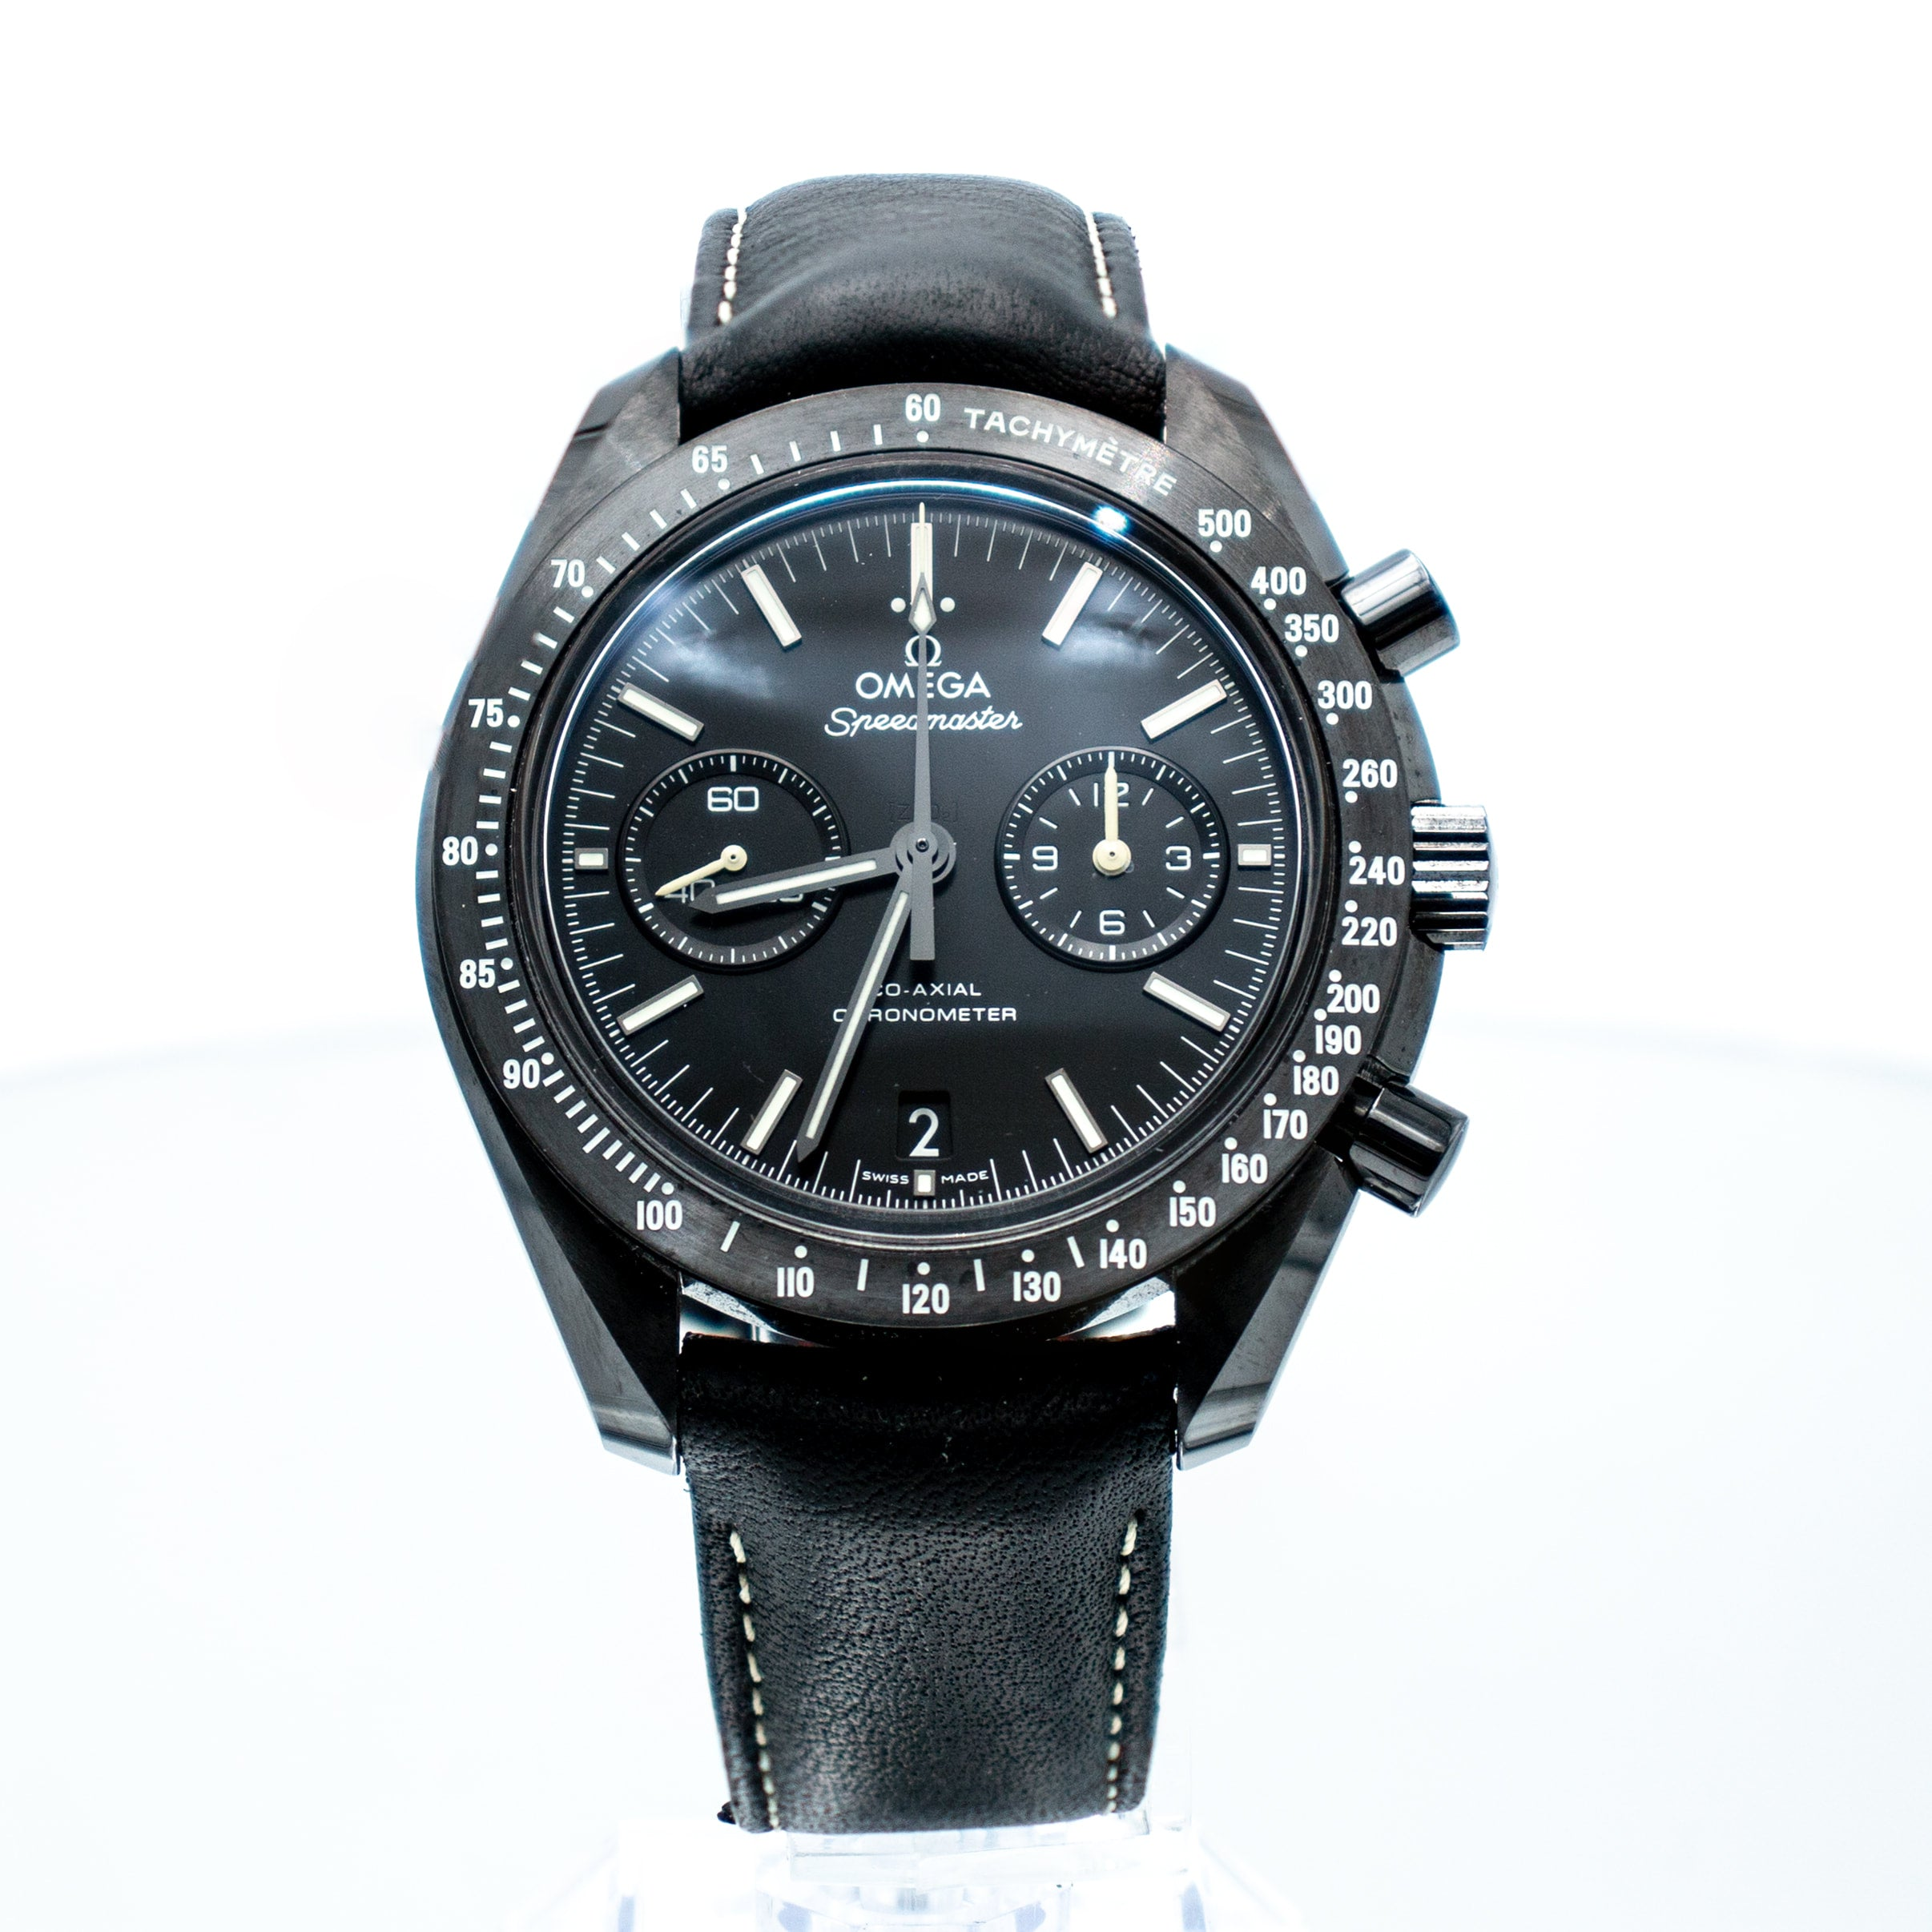 Omega Speedmaster Professional Dark Side Of The Moon - Pitch Black Edition